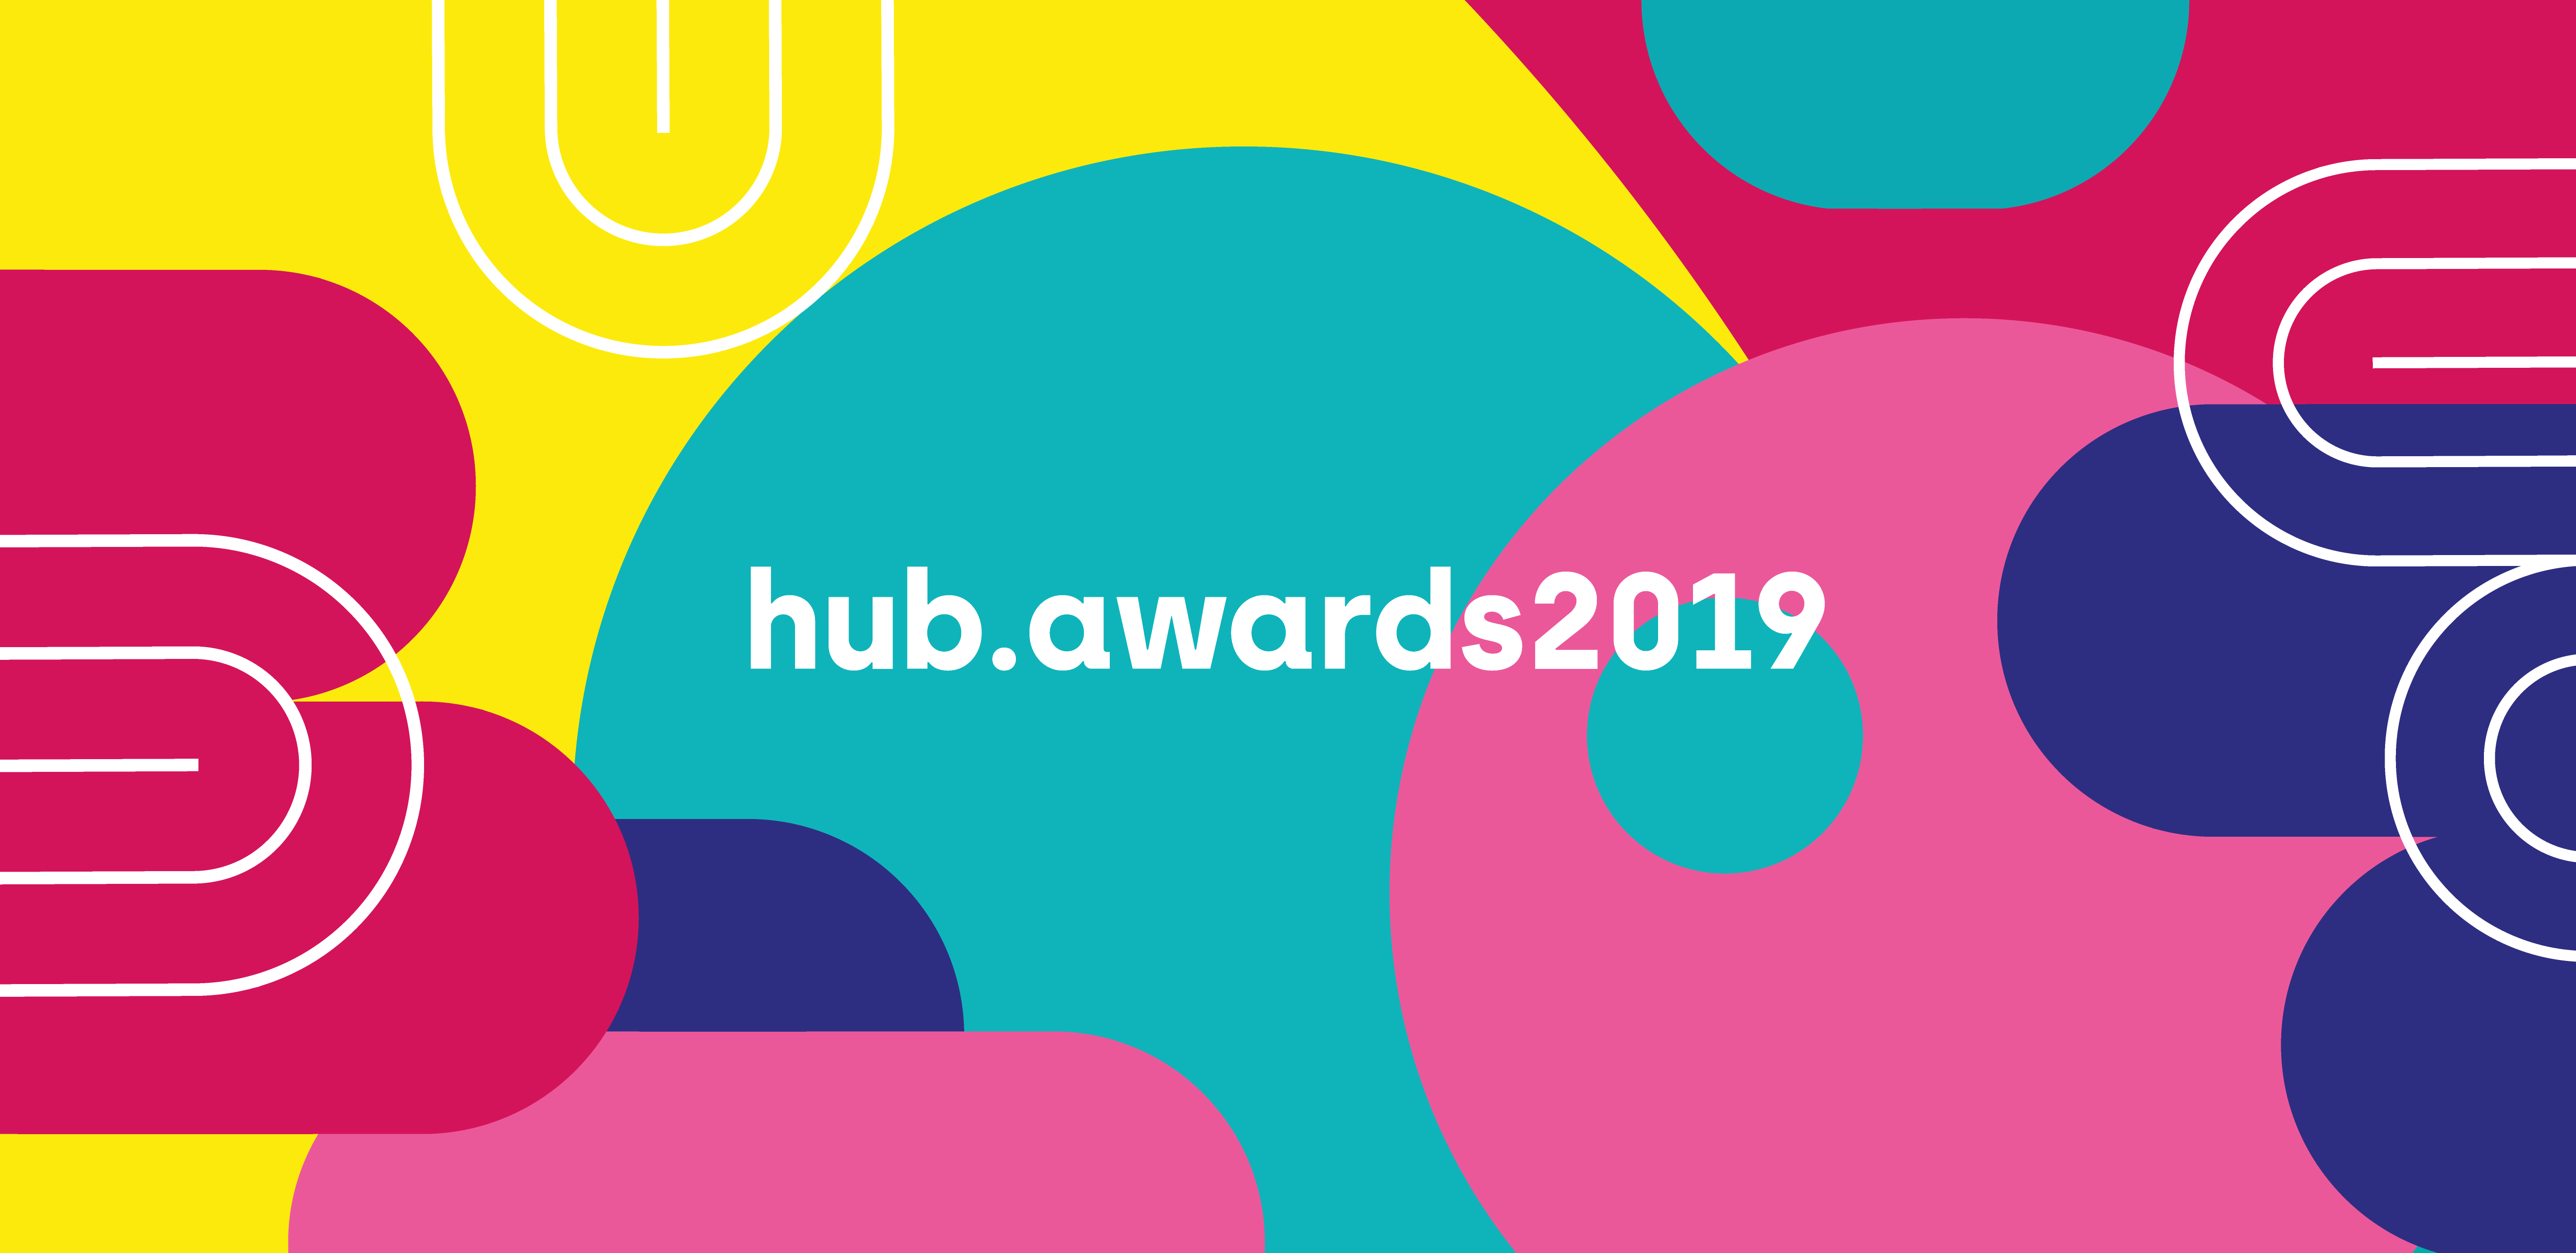 hub.awards2019: the winning businesses are known!